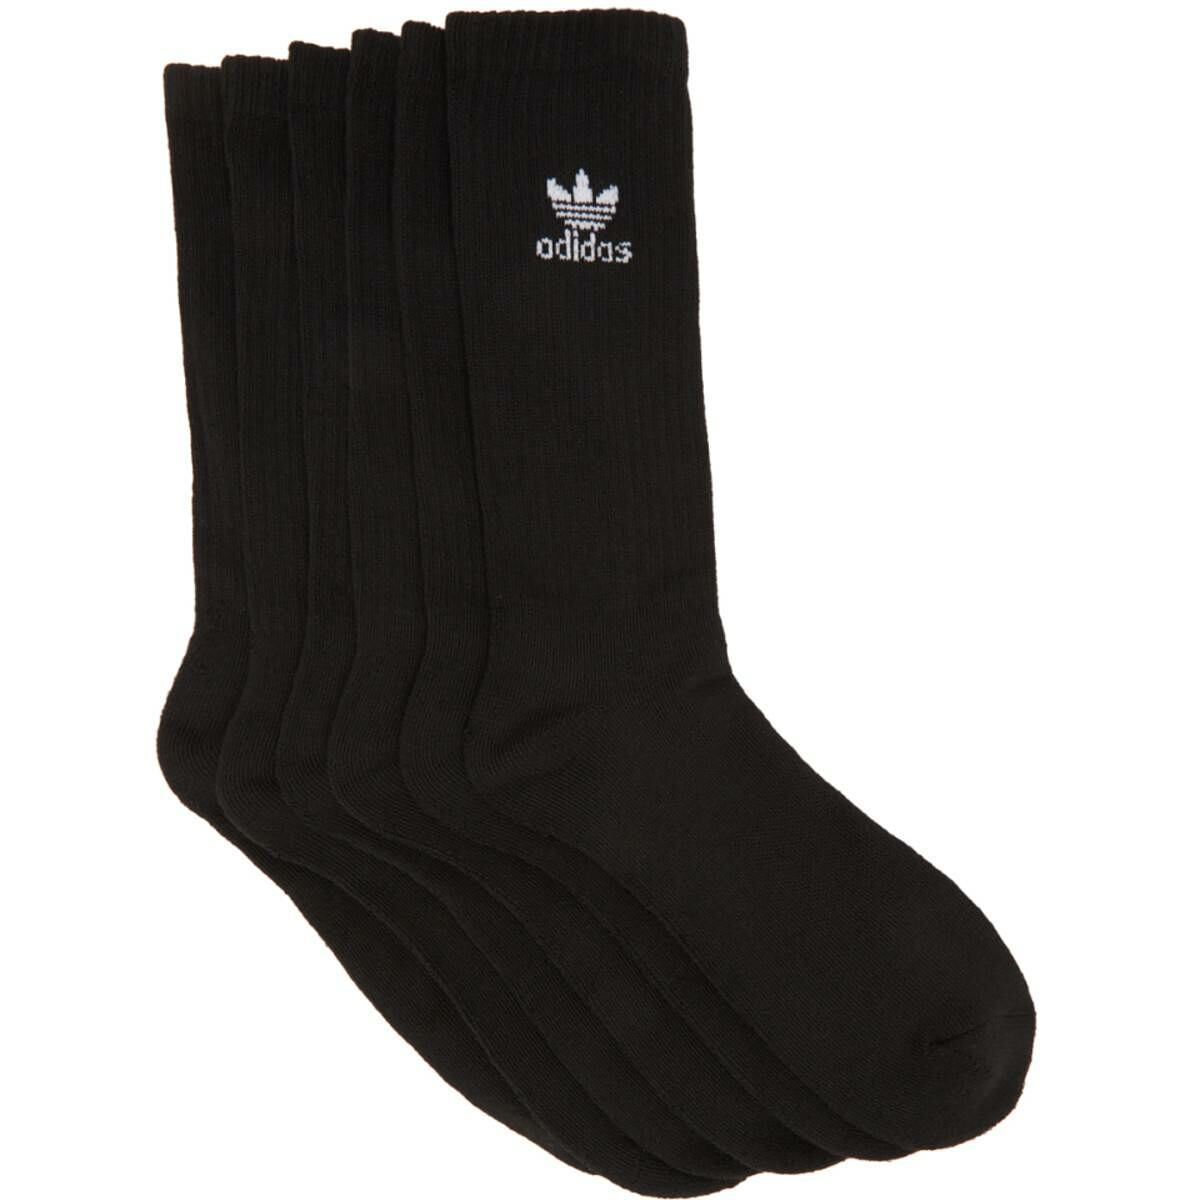 adidas Originals Six-Pack Black Solid Crew Socks Ssense USA MEN Men ACCESSORIES Mens SOCKS